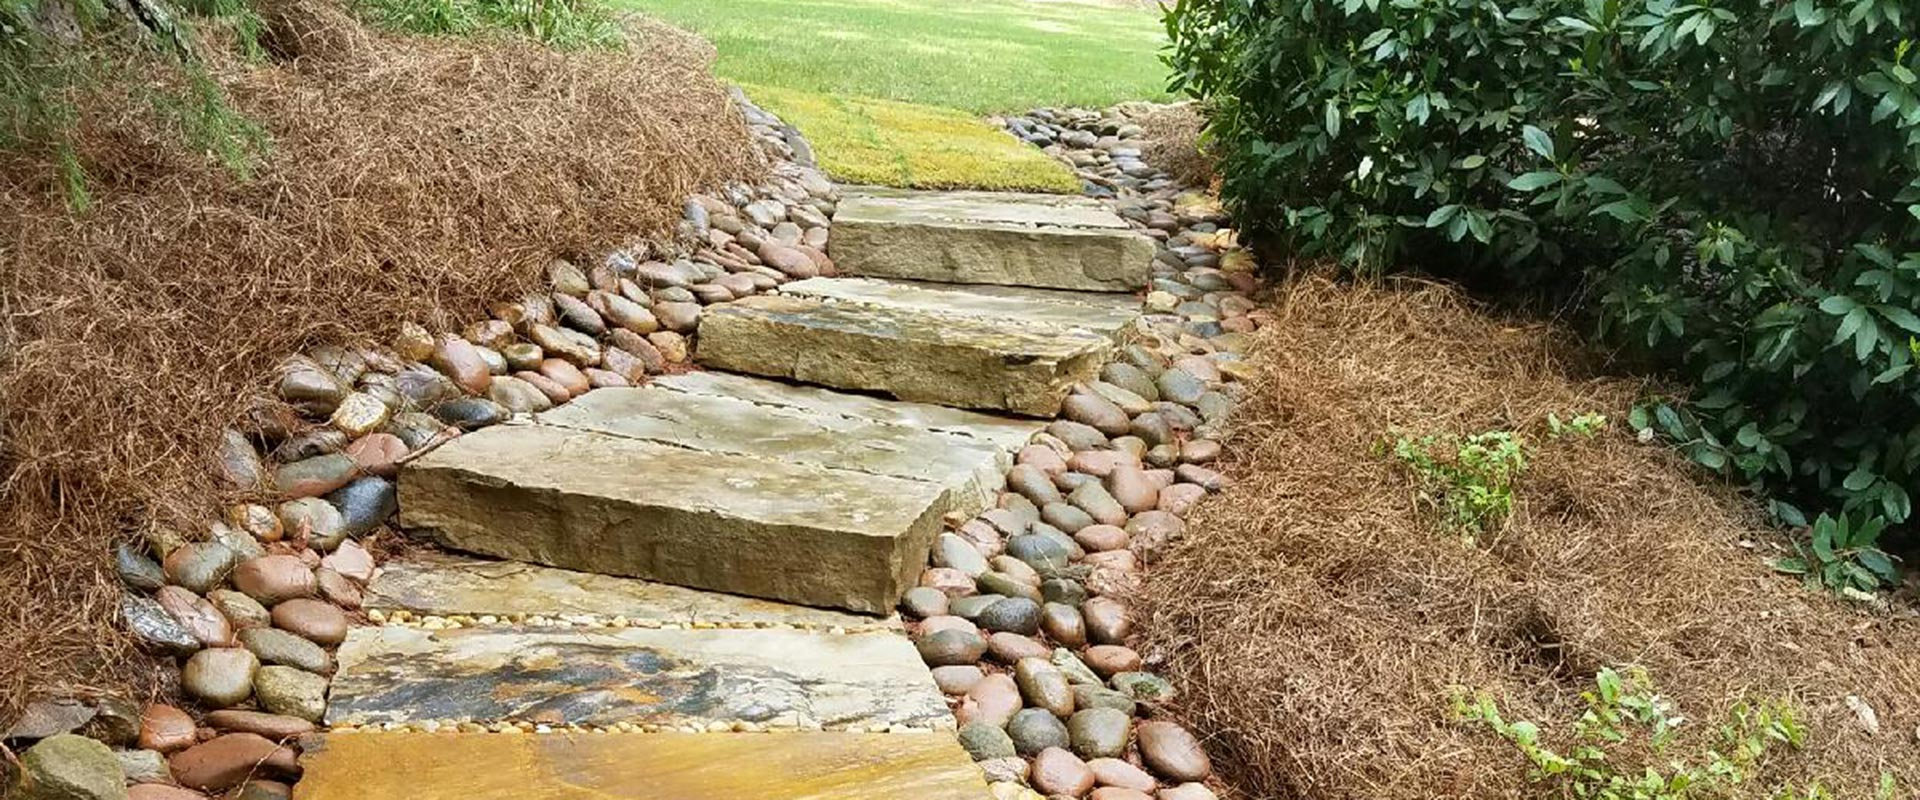 steps and hardscapes